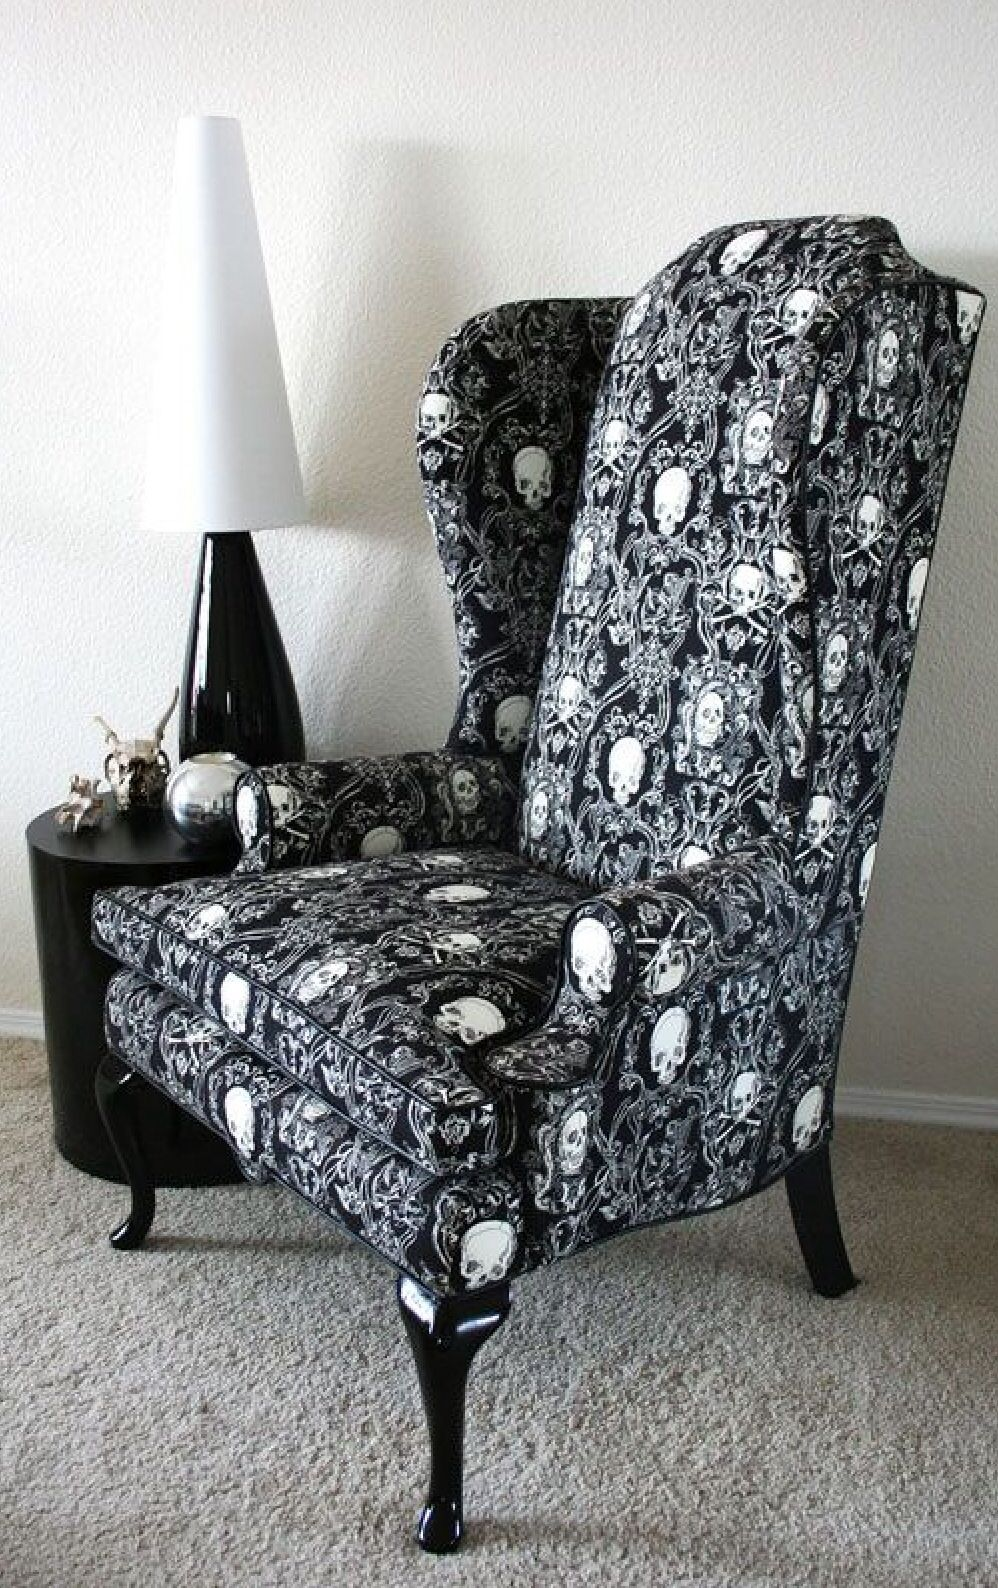 Ordinaire Grandad Skull Chair, Am Lovin These Skull Chairs